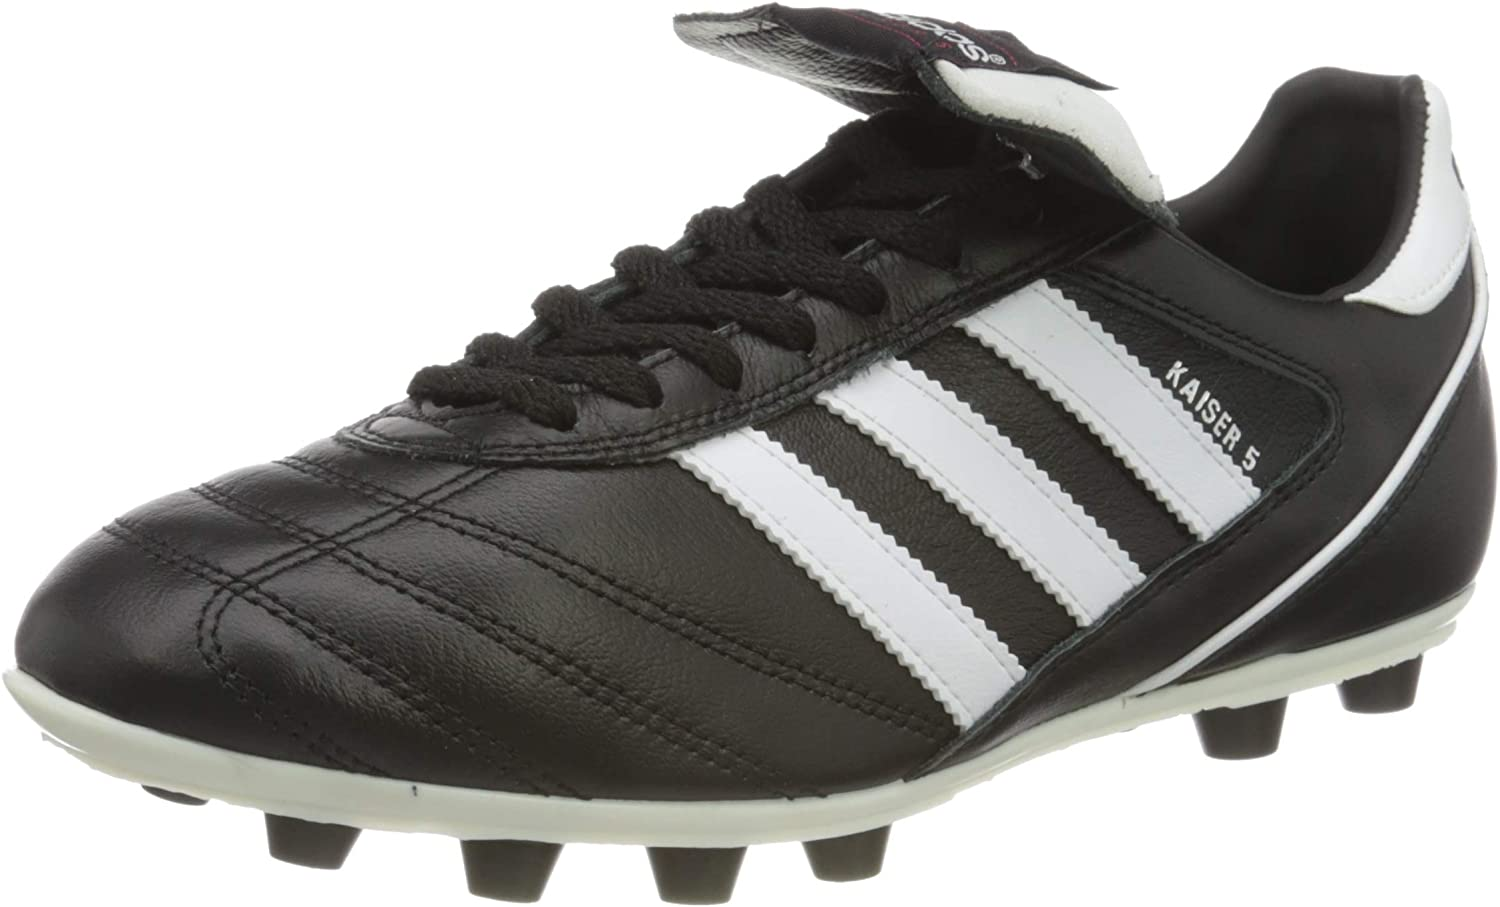 19 Best Scarpe Adidas Copa images | Sport shoes, Shoes, Cleats